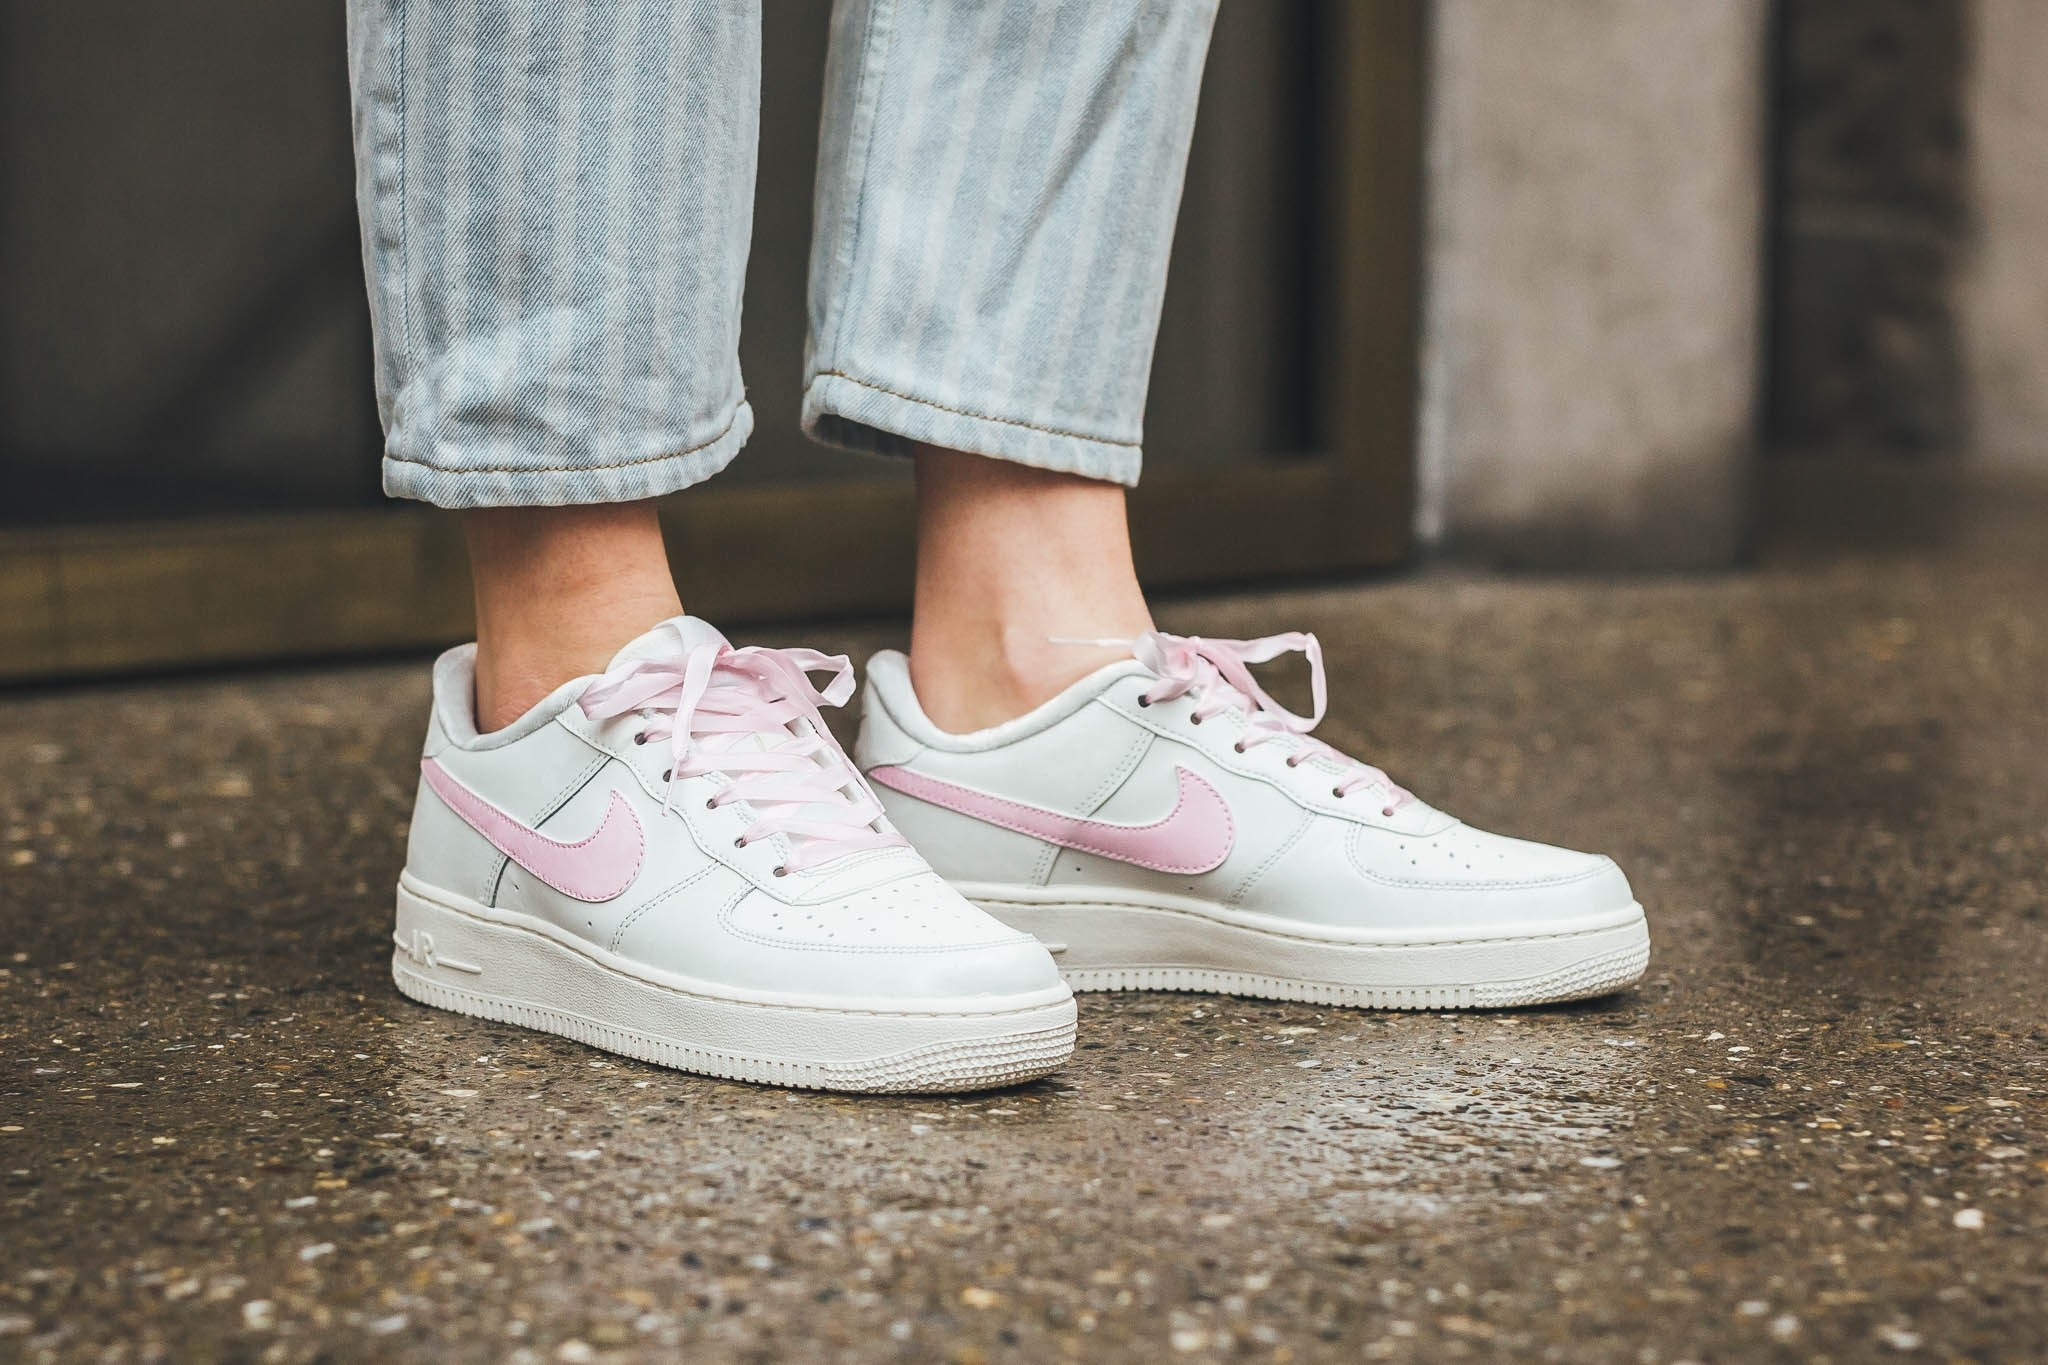 Millennial Pink Transforms Nike's Air Force 1 With Adorable